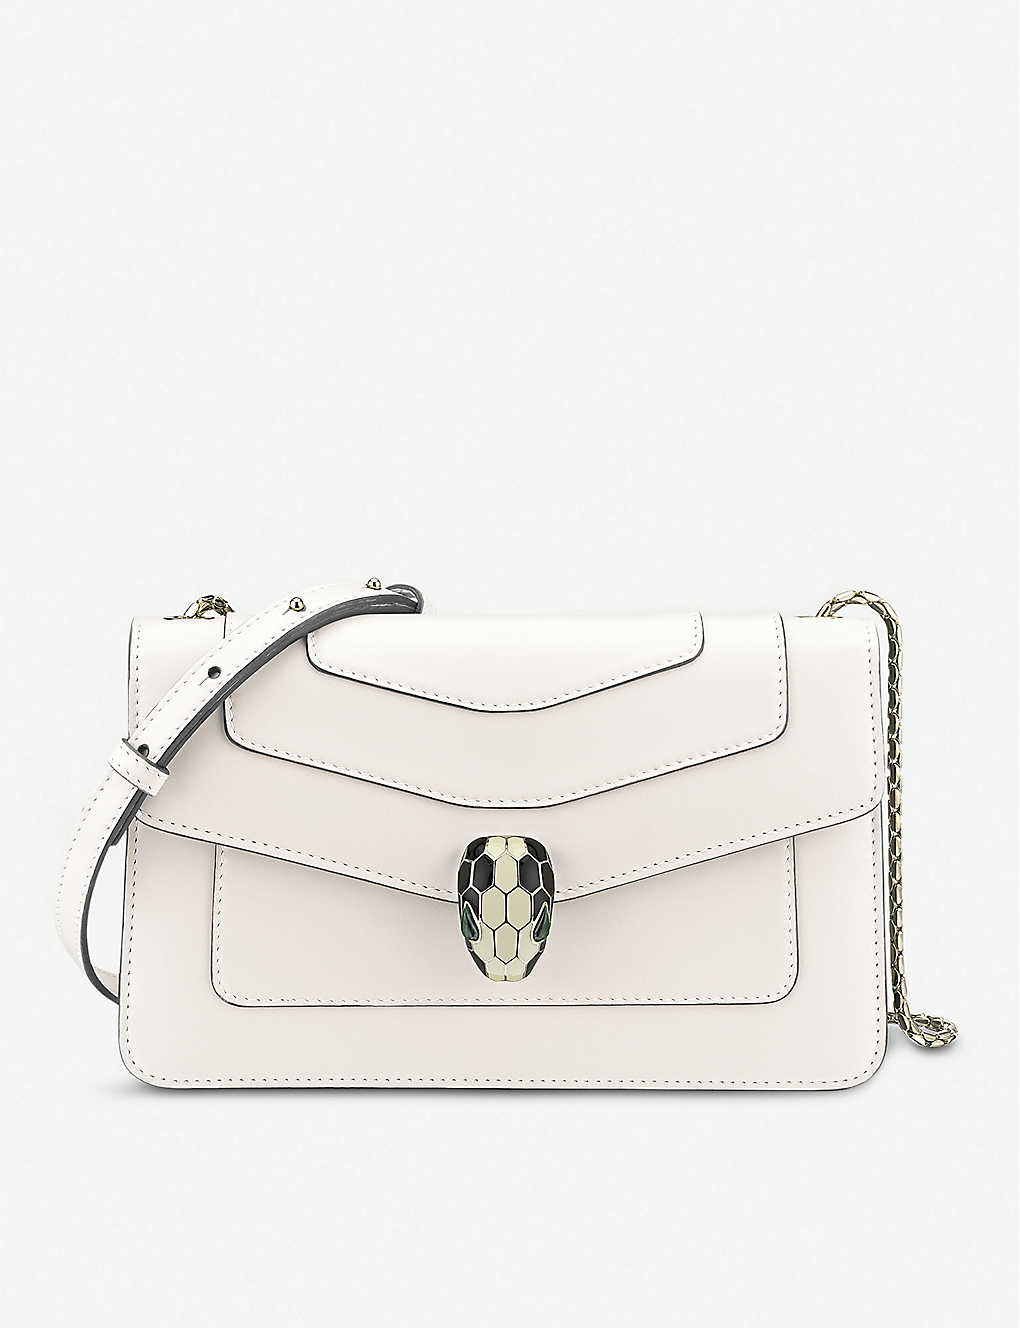 BVLGARI: Serpenti Forever cross-body bag